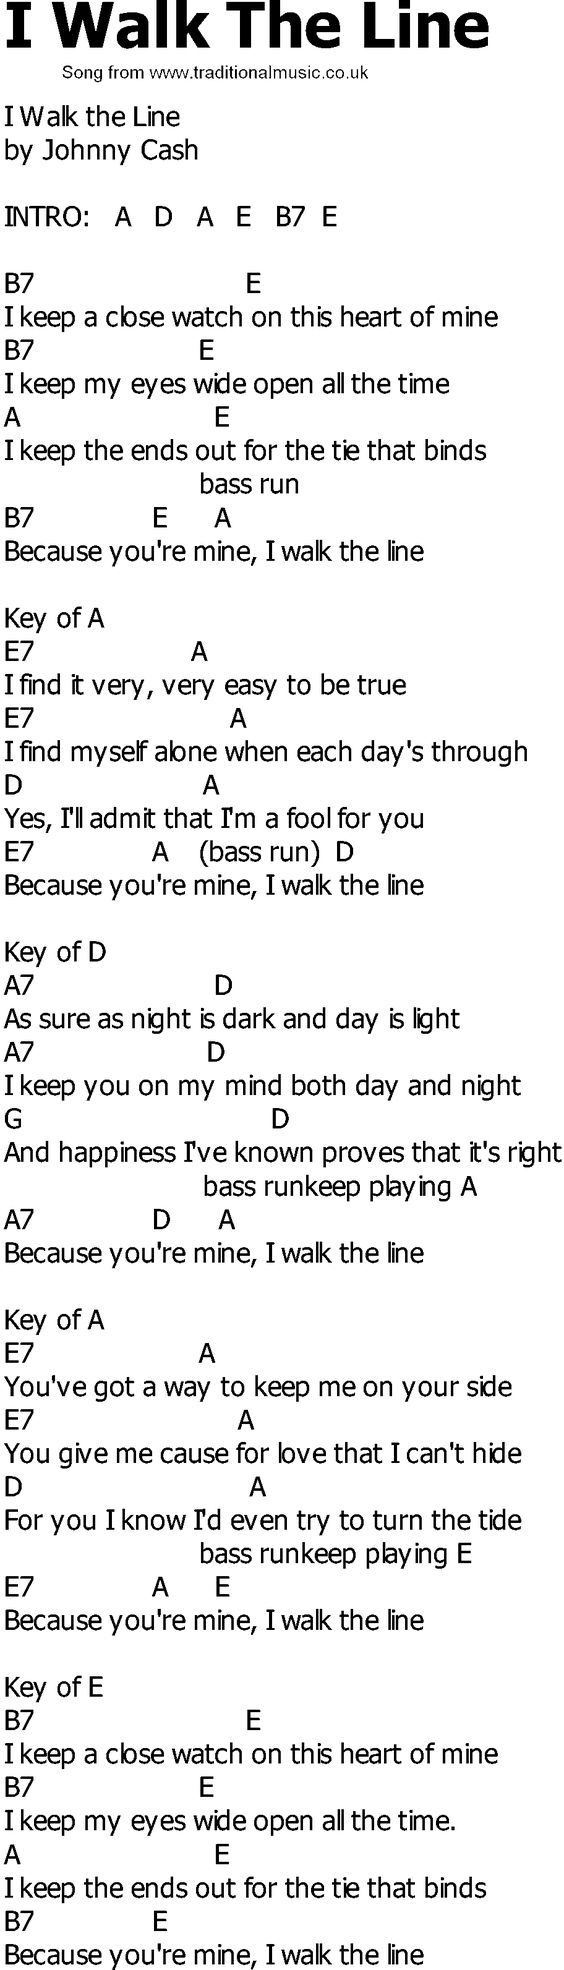 Old Country song lyrics with chords - I Walk The Line